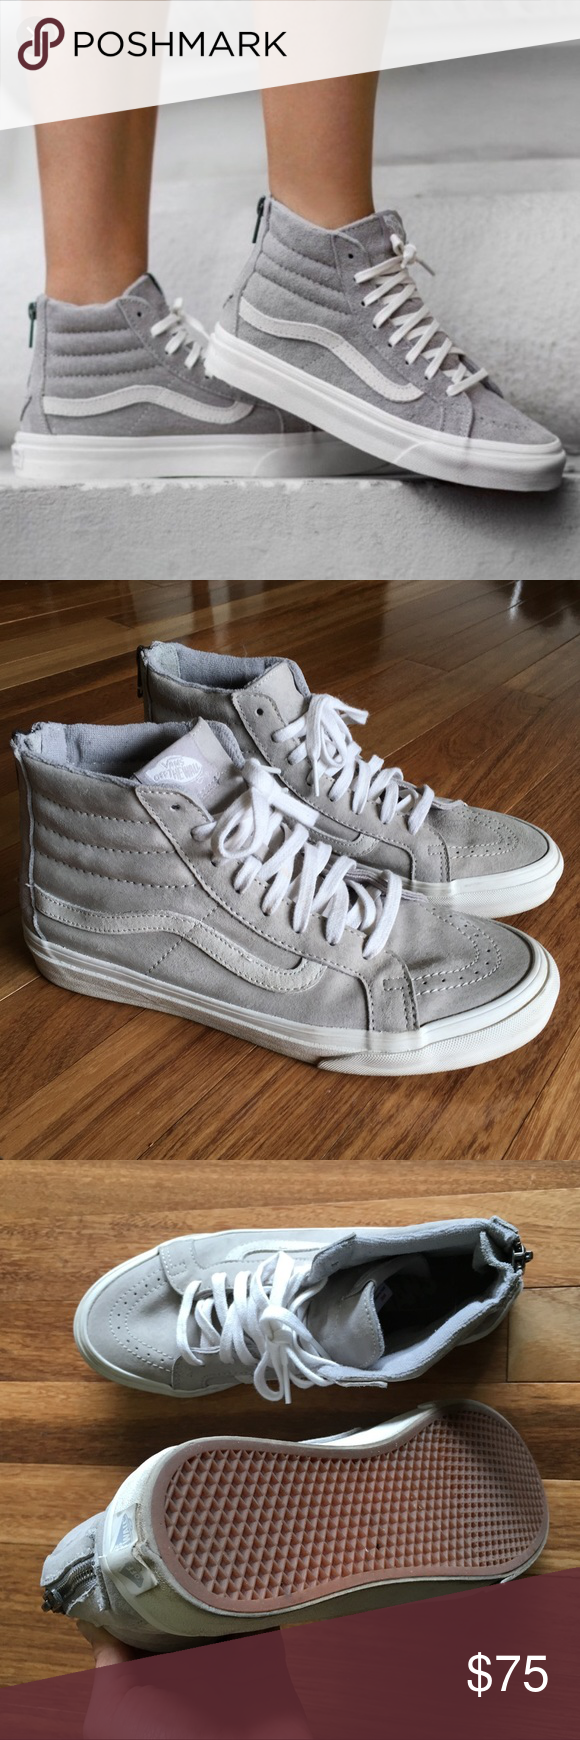 d412753961 Vans SK8-HI Slim Zip - Cool grey Vans hi-top Scotchgard with grey suede and  white detail. Zipper in the back Women s 8.5